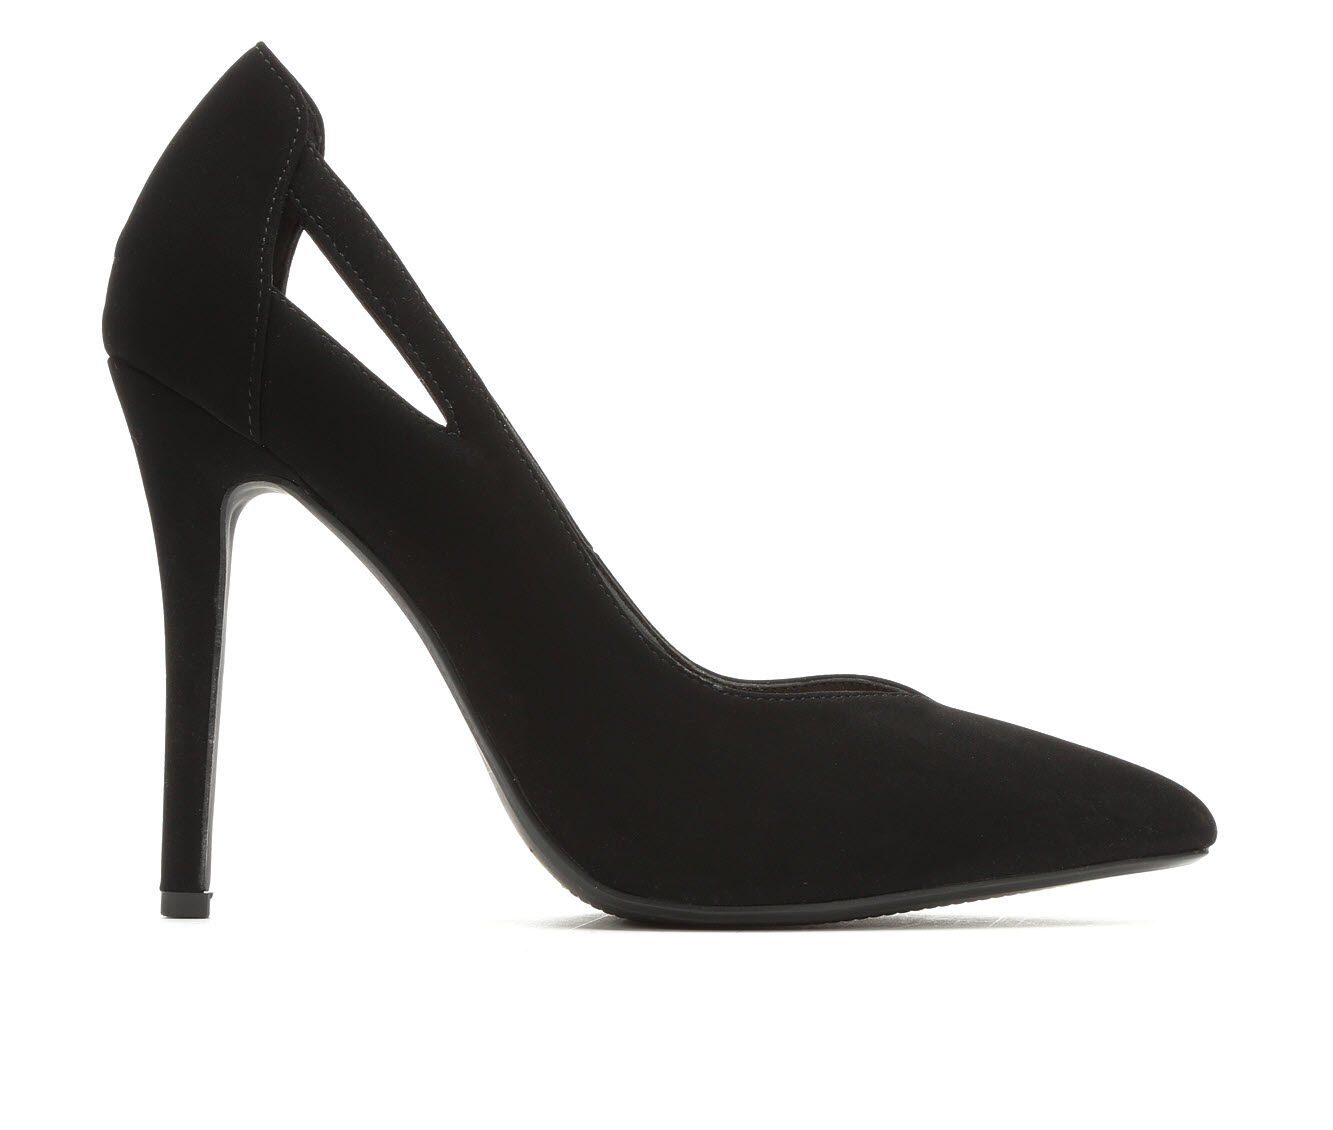 Women's Delicious Scarlet Pumps Black Nubuck